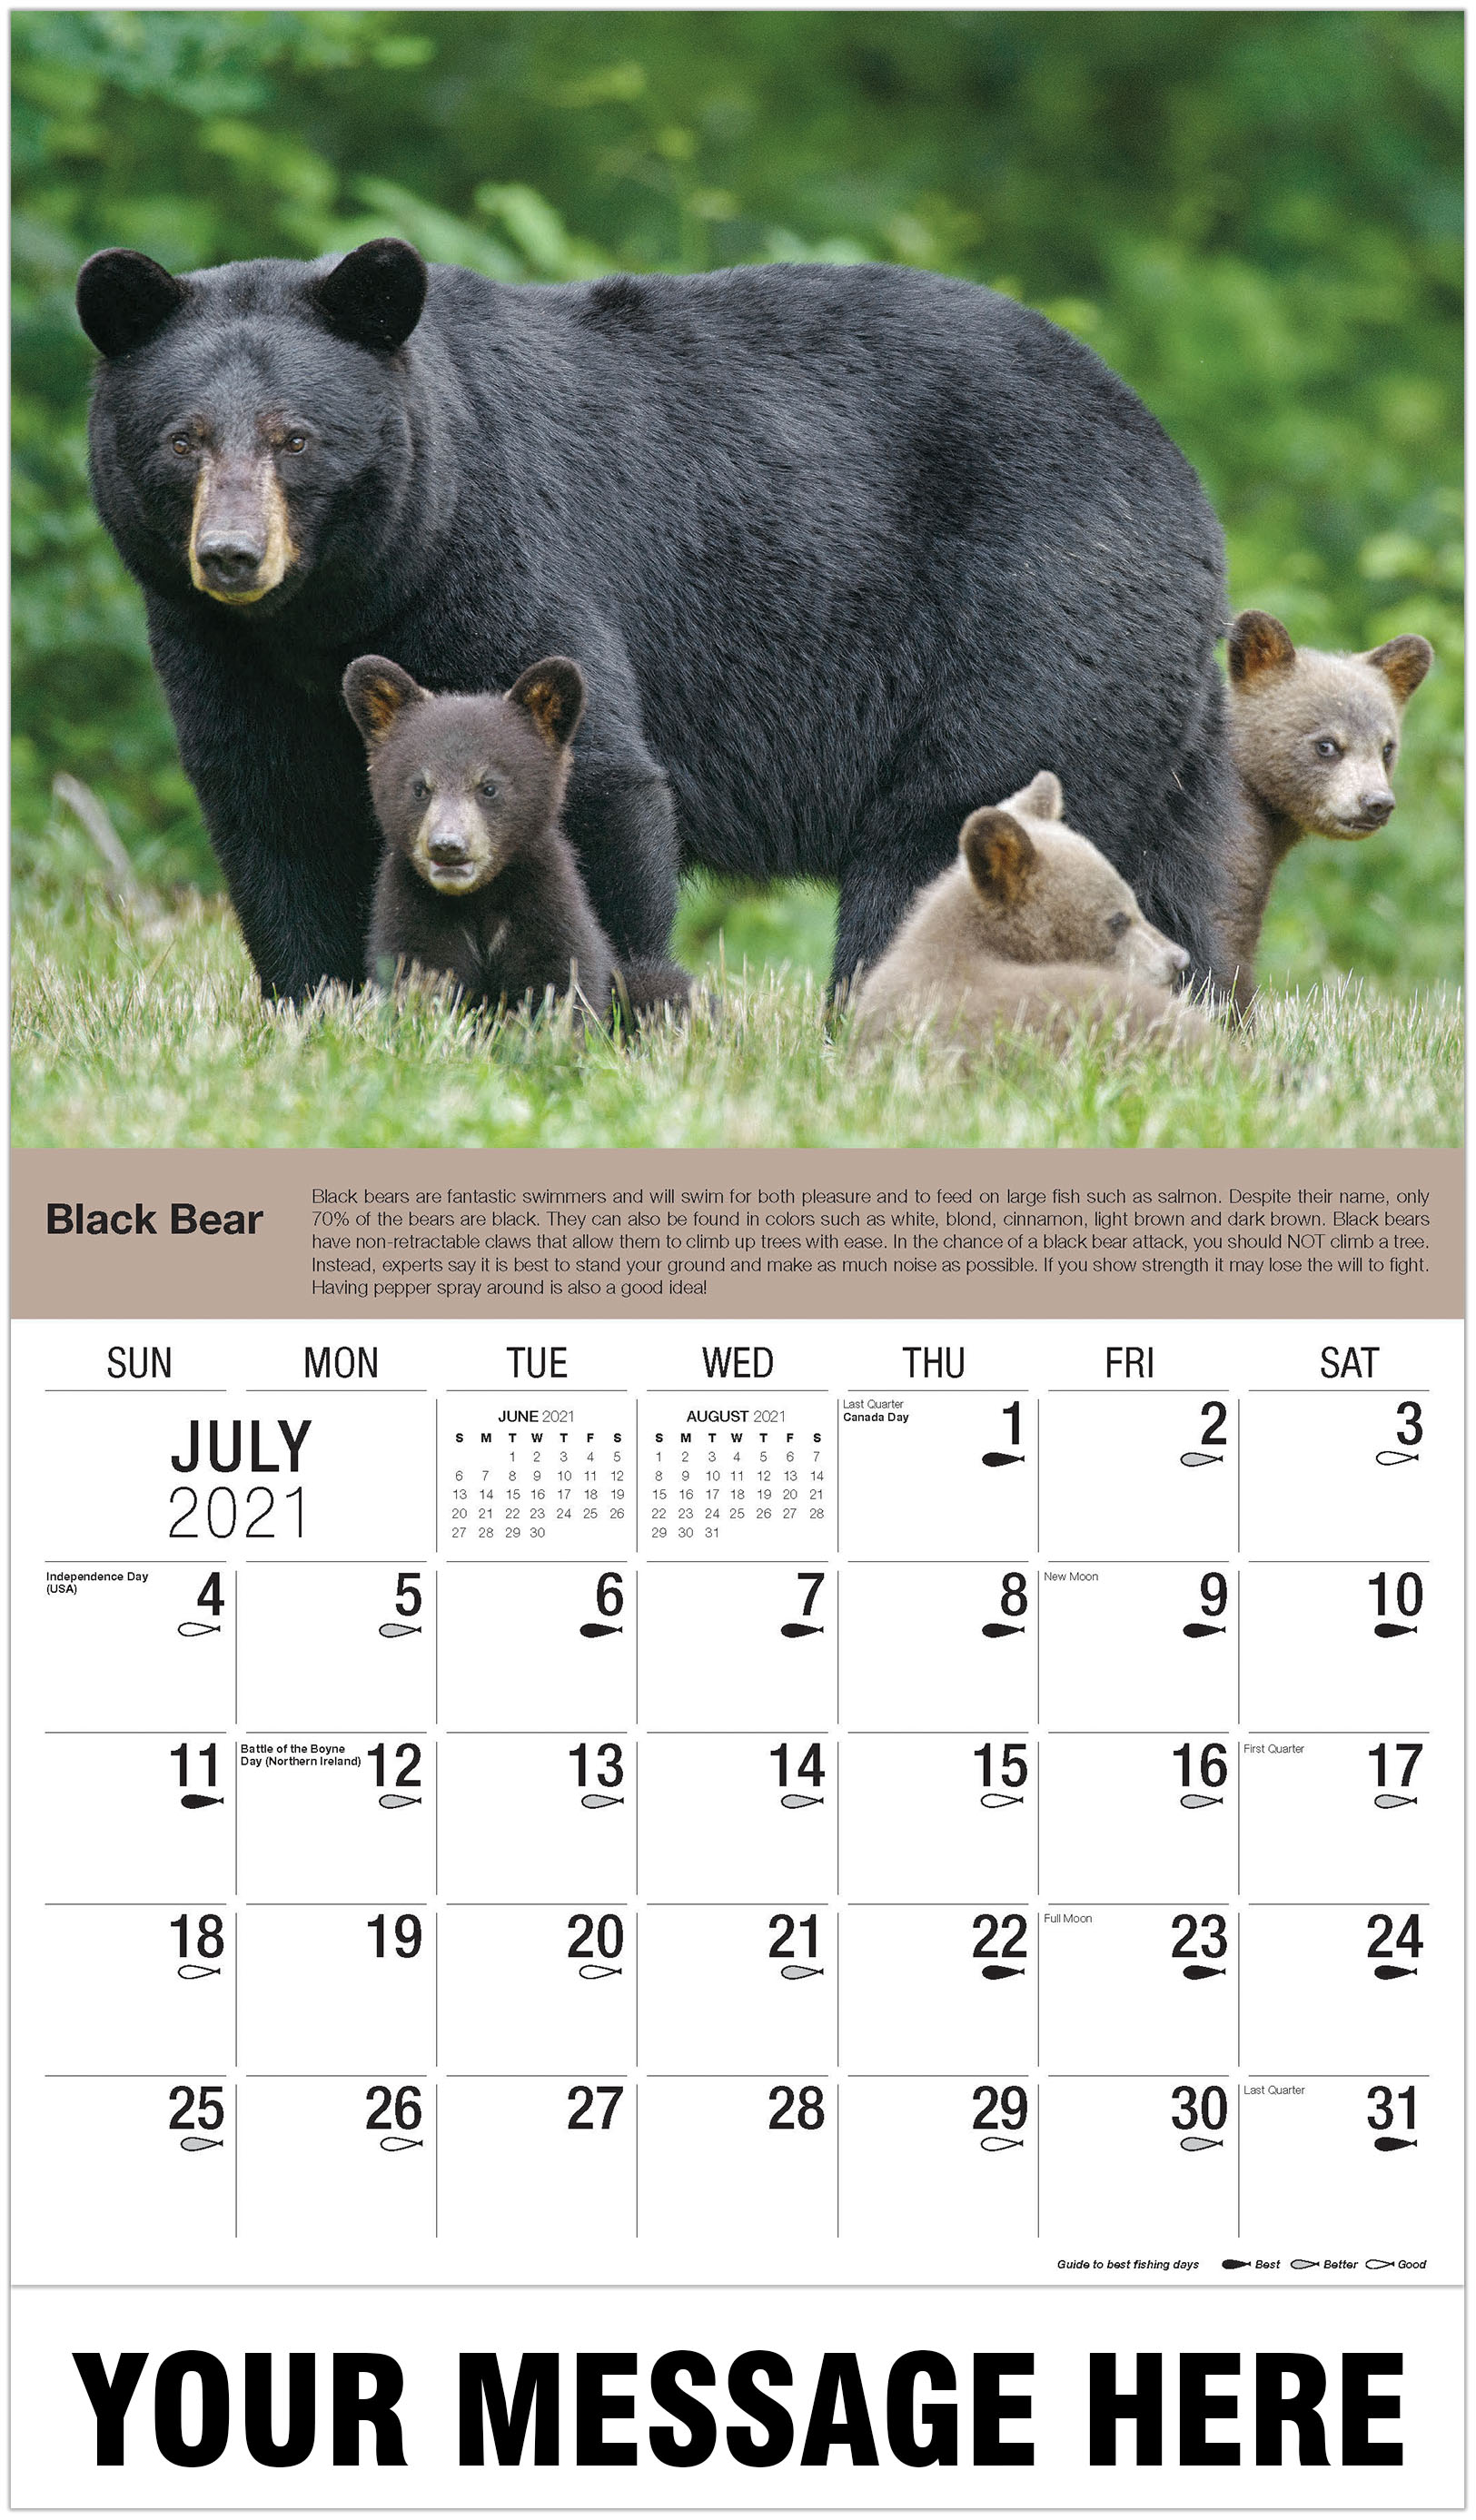 Black Bear With Cubs - July - North American Wildlife 2021 Promotional Calendar